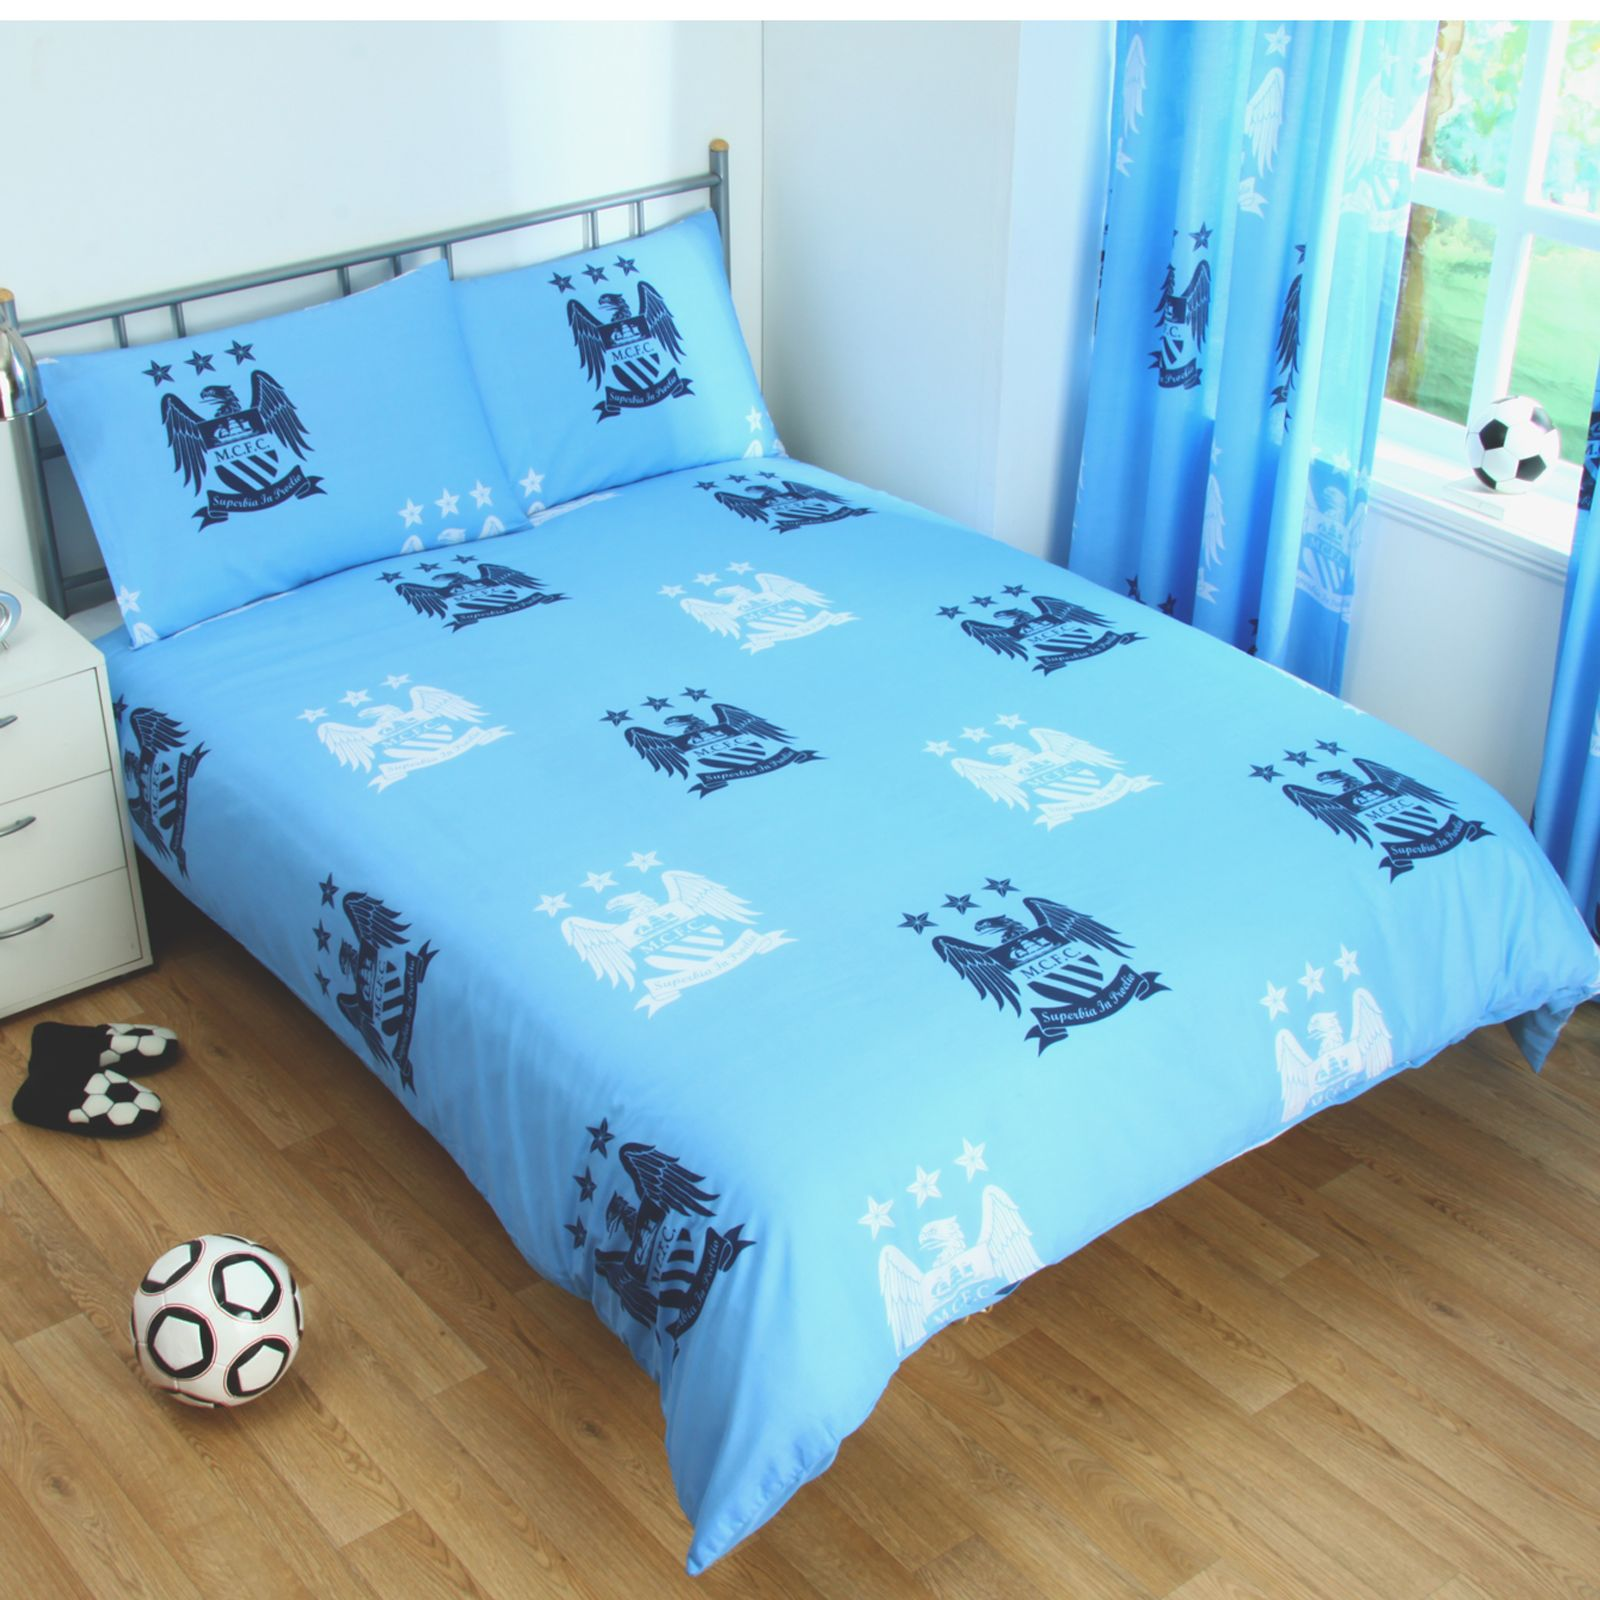 manchester city fc housse de couette double nouvelle football homme chambre ebay. Black Bedroom Furniture Sets. Home Design Ideas